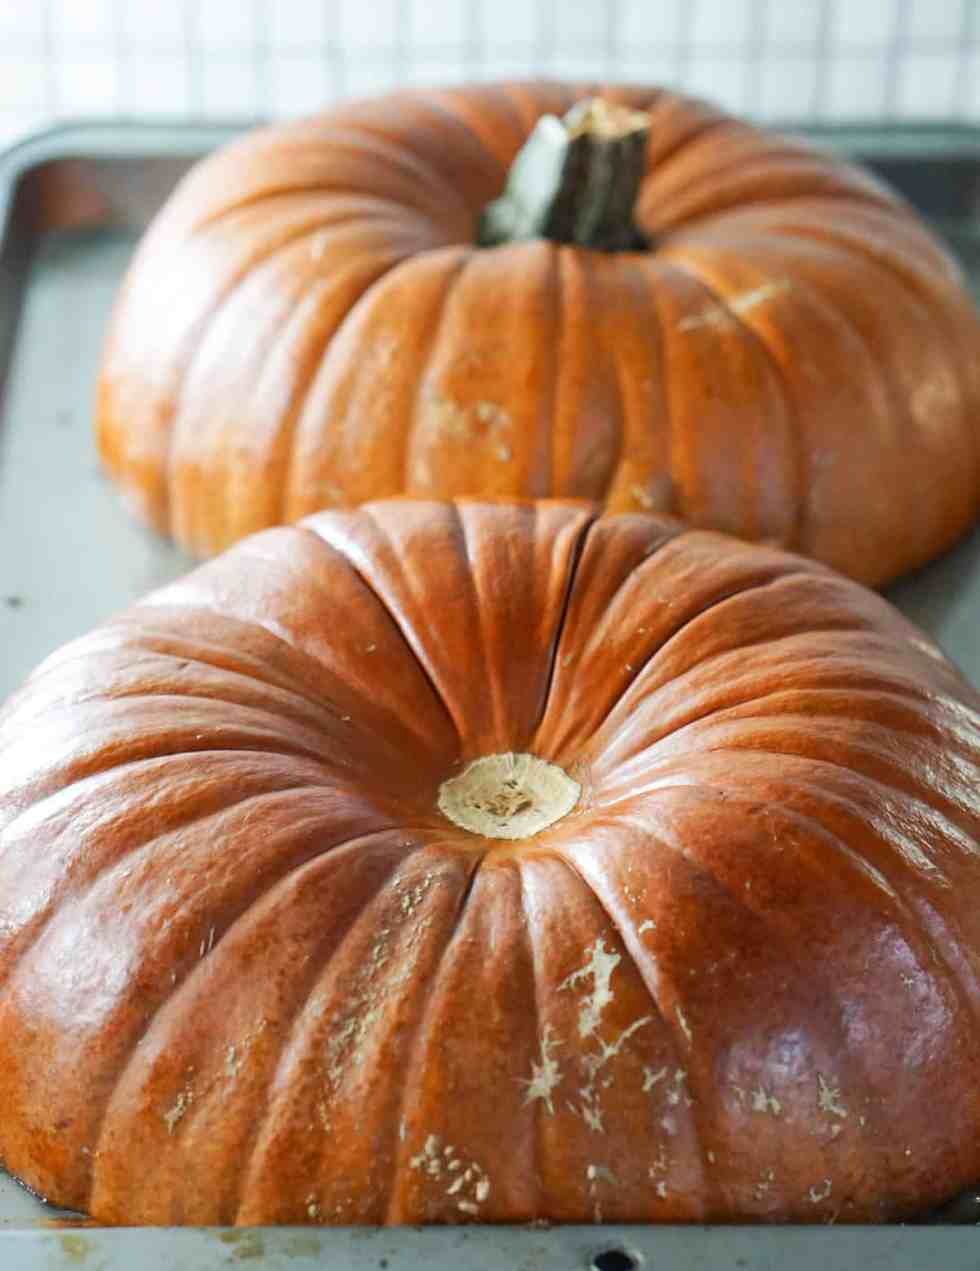 super easy and naturally healthy homemade pumpkin puree. Impress friends and family with made-from-scratch pumpkin deliciousness.